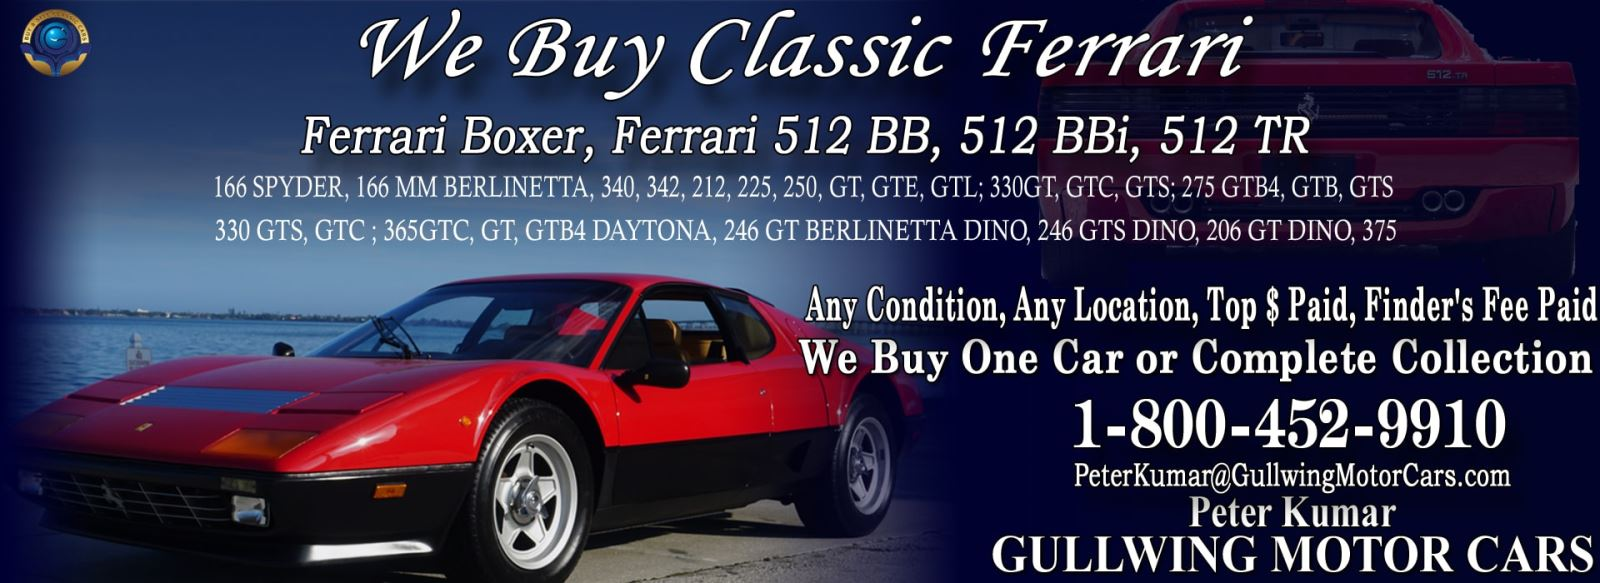 Classic Ferrari 512 BB for sale, we buy vintage Ferrari 512BB. Call Peter Kumar. Gullwing Motor